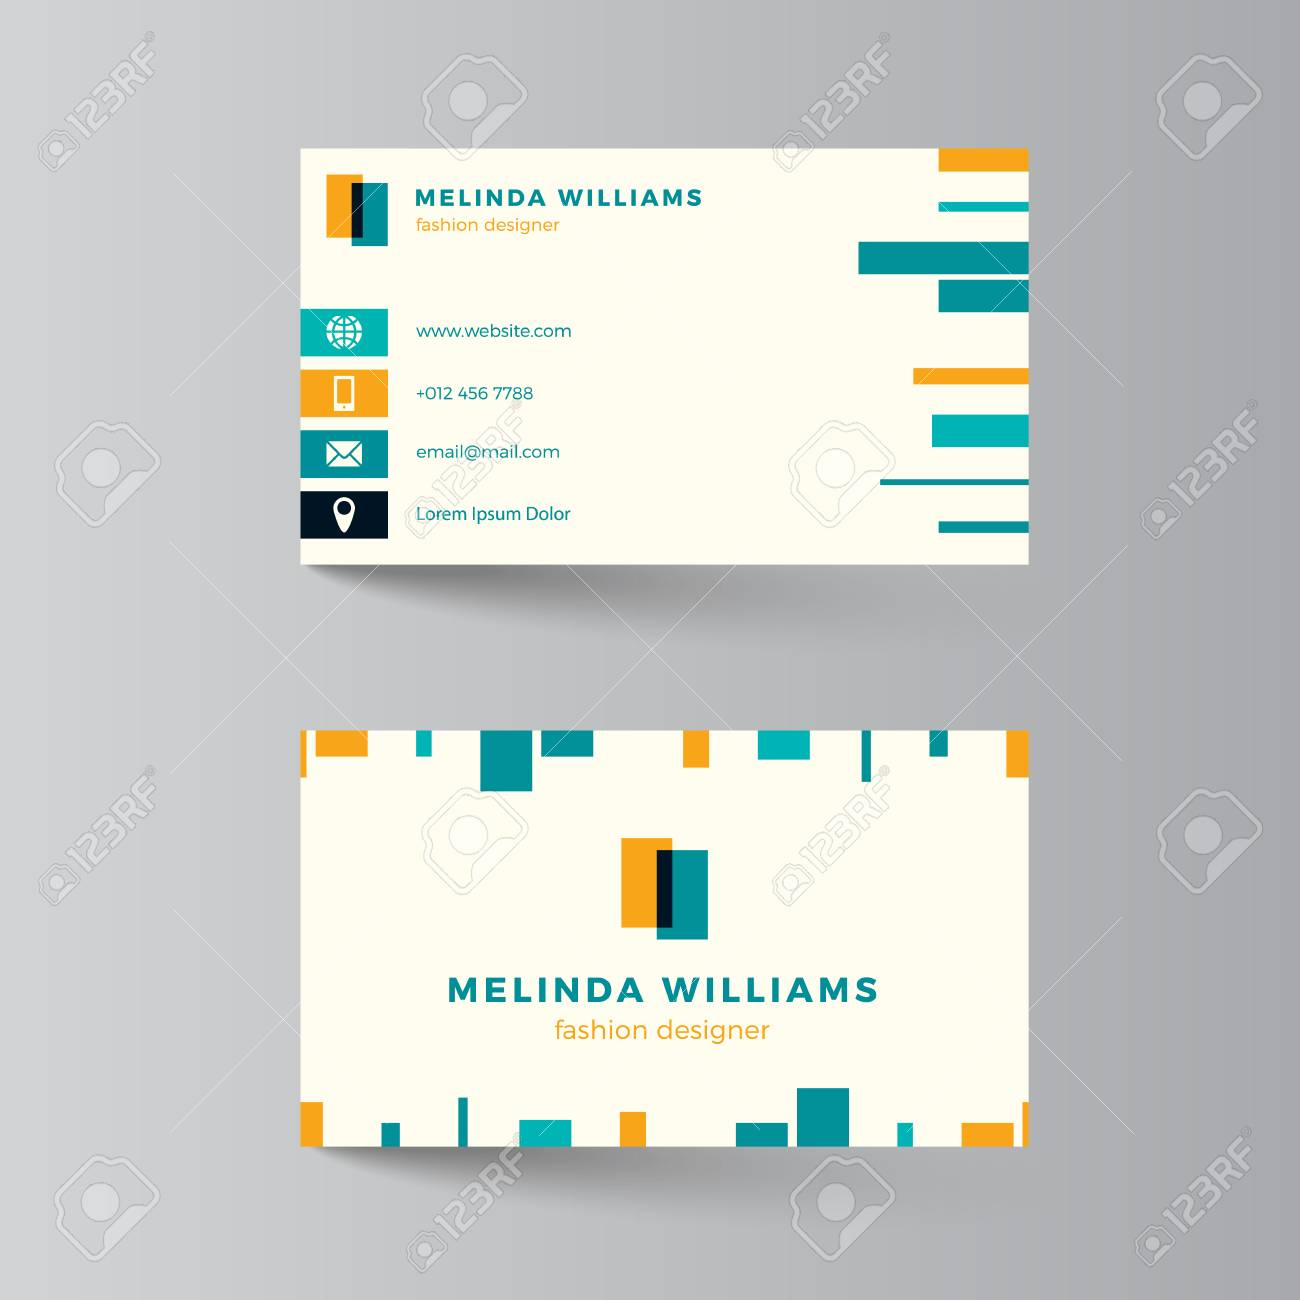 Business Card Layout Vector Illustration Turquoise And Yellow